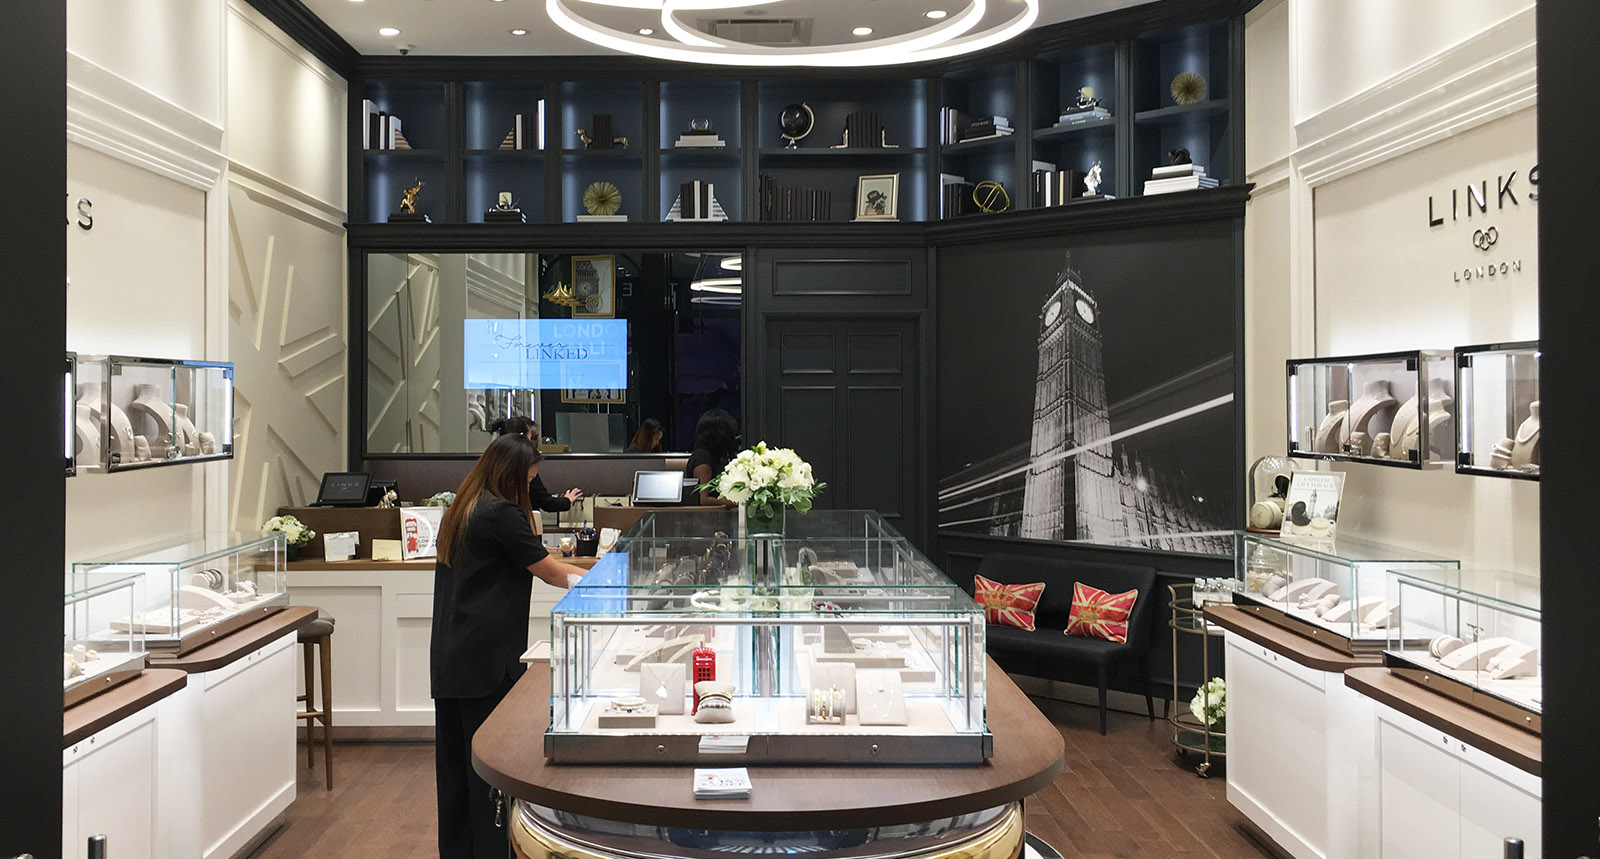 Links of London Store with People